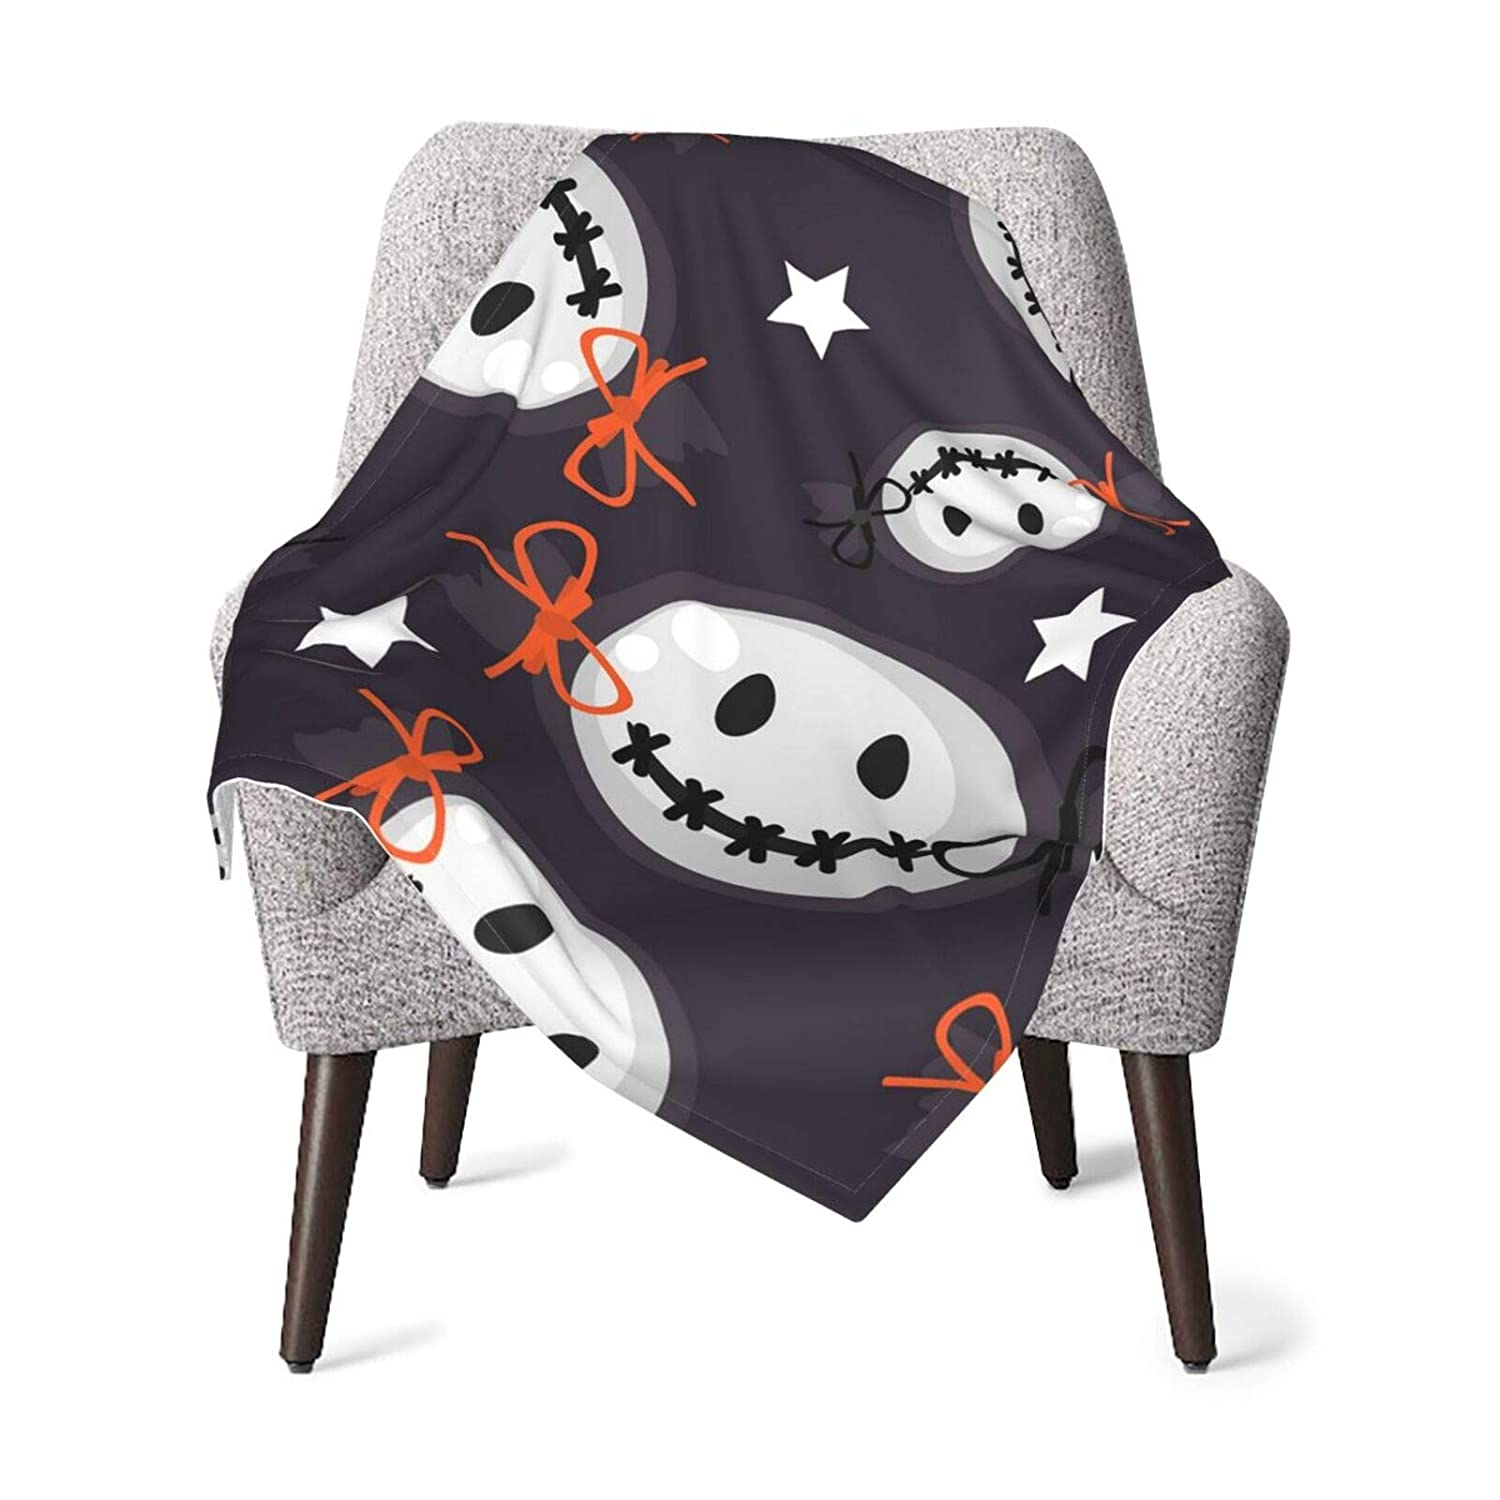 Vampire Blood Lip Mouth (9) Baby Blanket Soft Minky with Double Layer Dotted Backing 30 X 40 Inch Receiving Swaddle Blankets Throw Blanket Travel Blanket Pet Blanket Sleeping Blanket